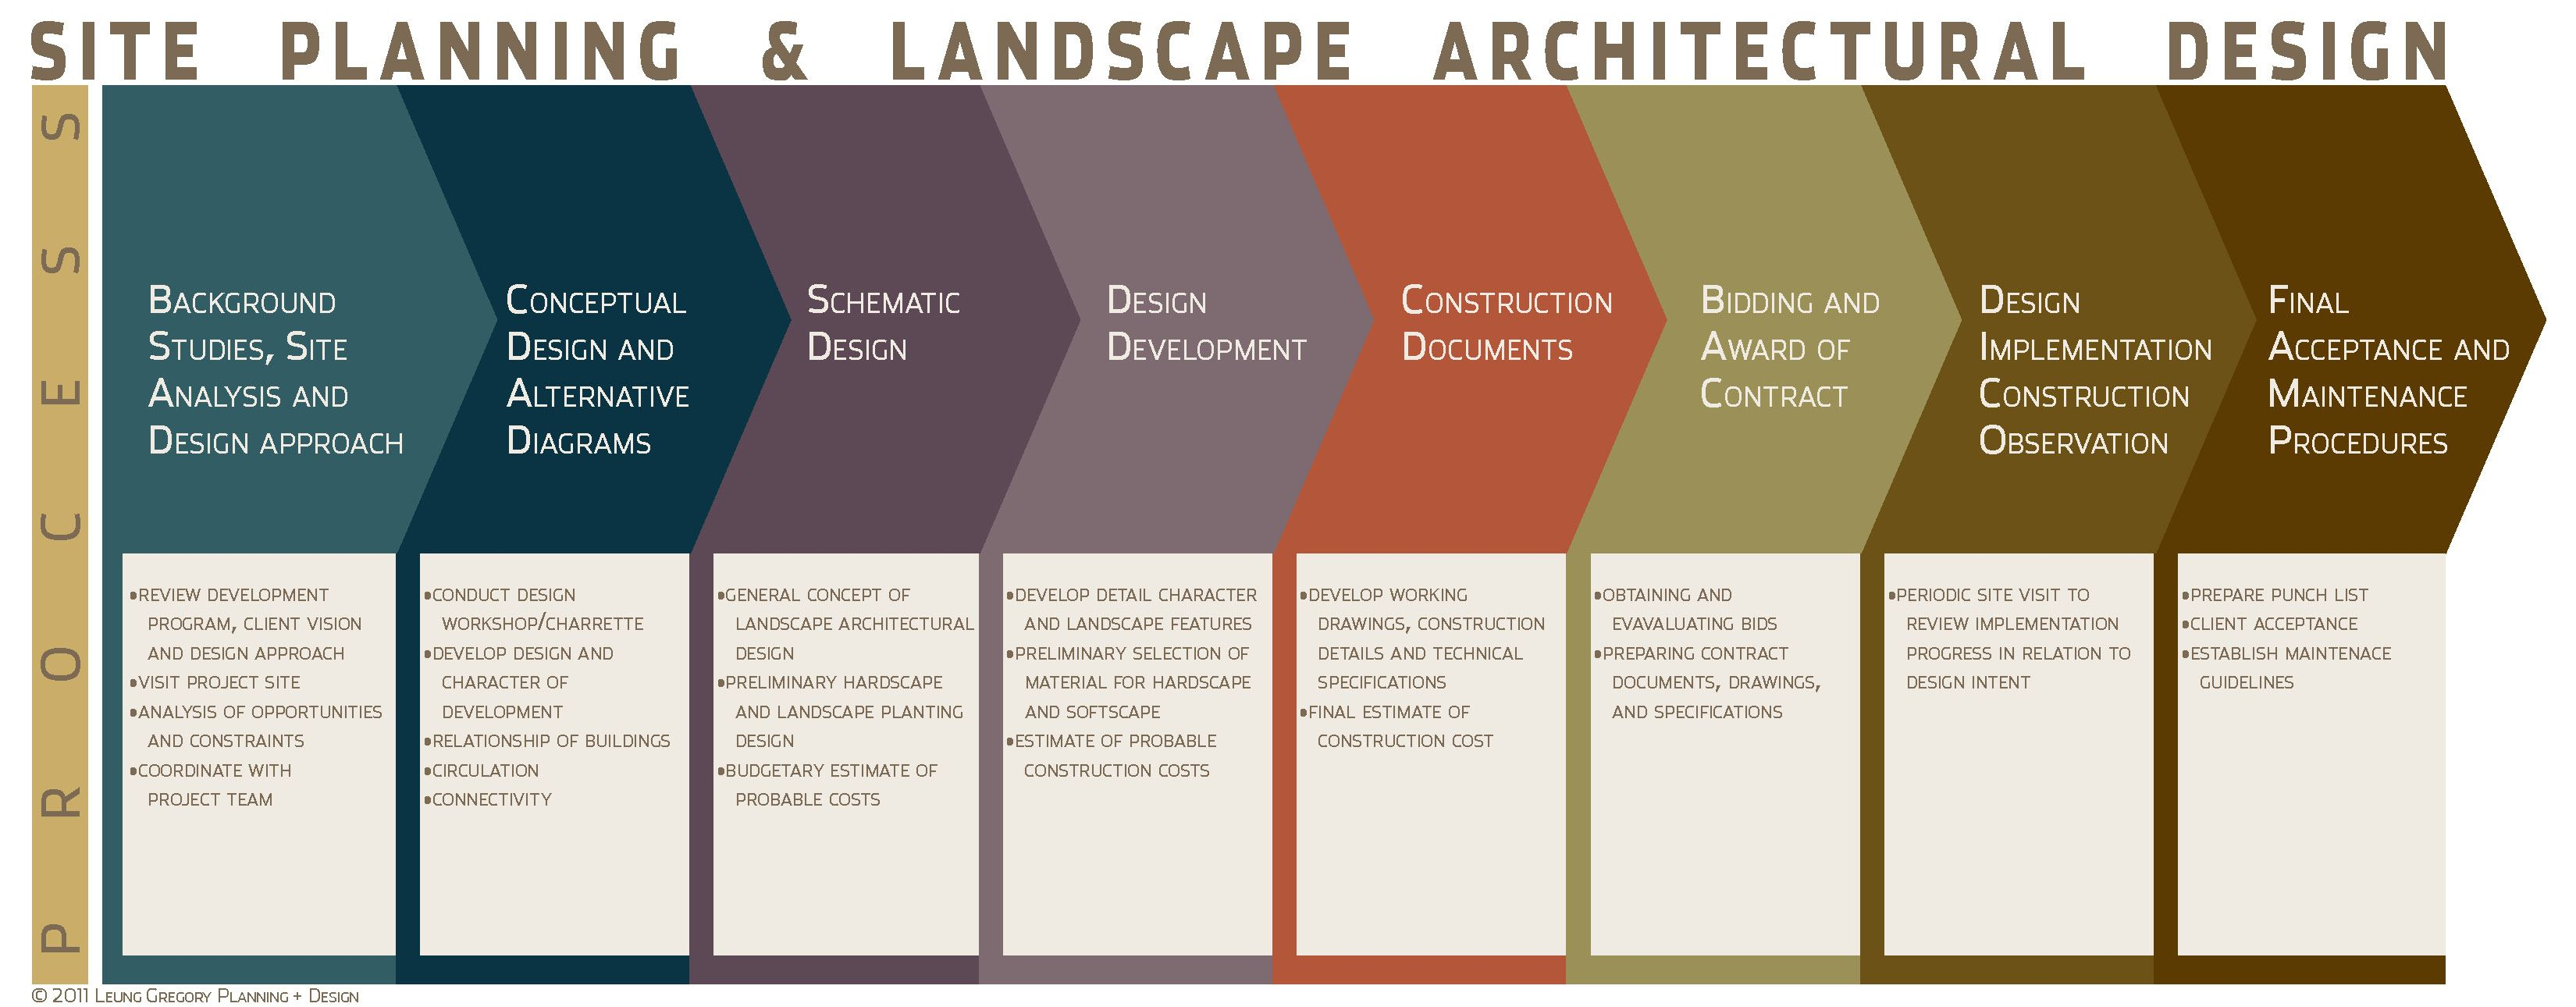 Site Planning And Landscape Architecture 3300 1290 Landscape Pinterest Site